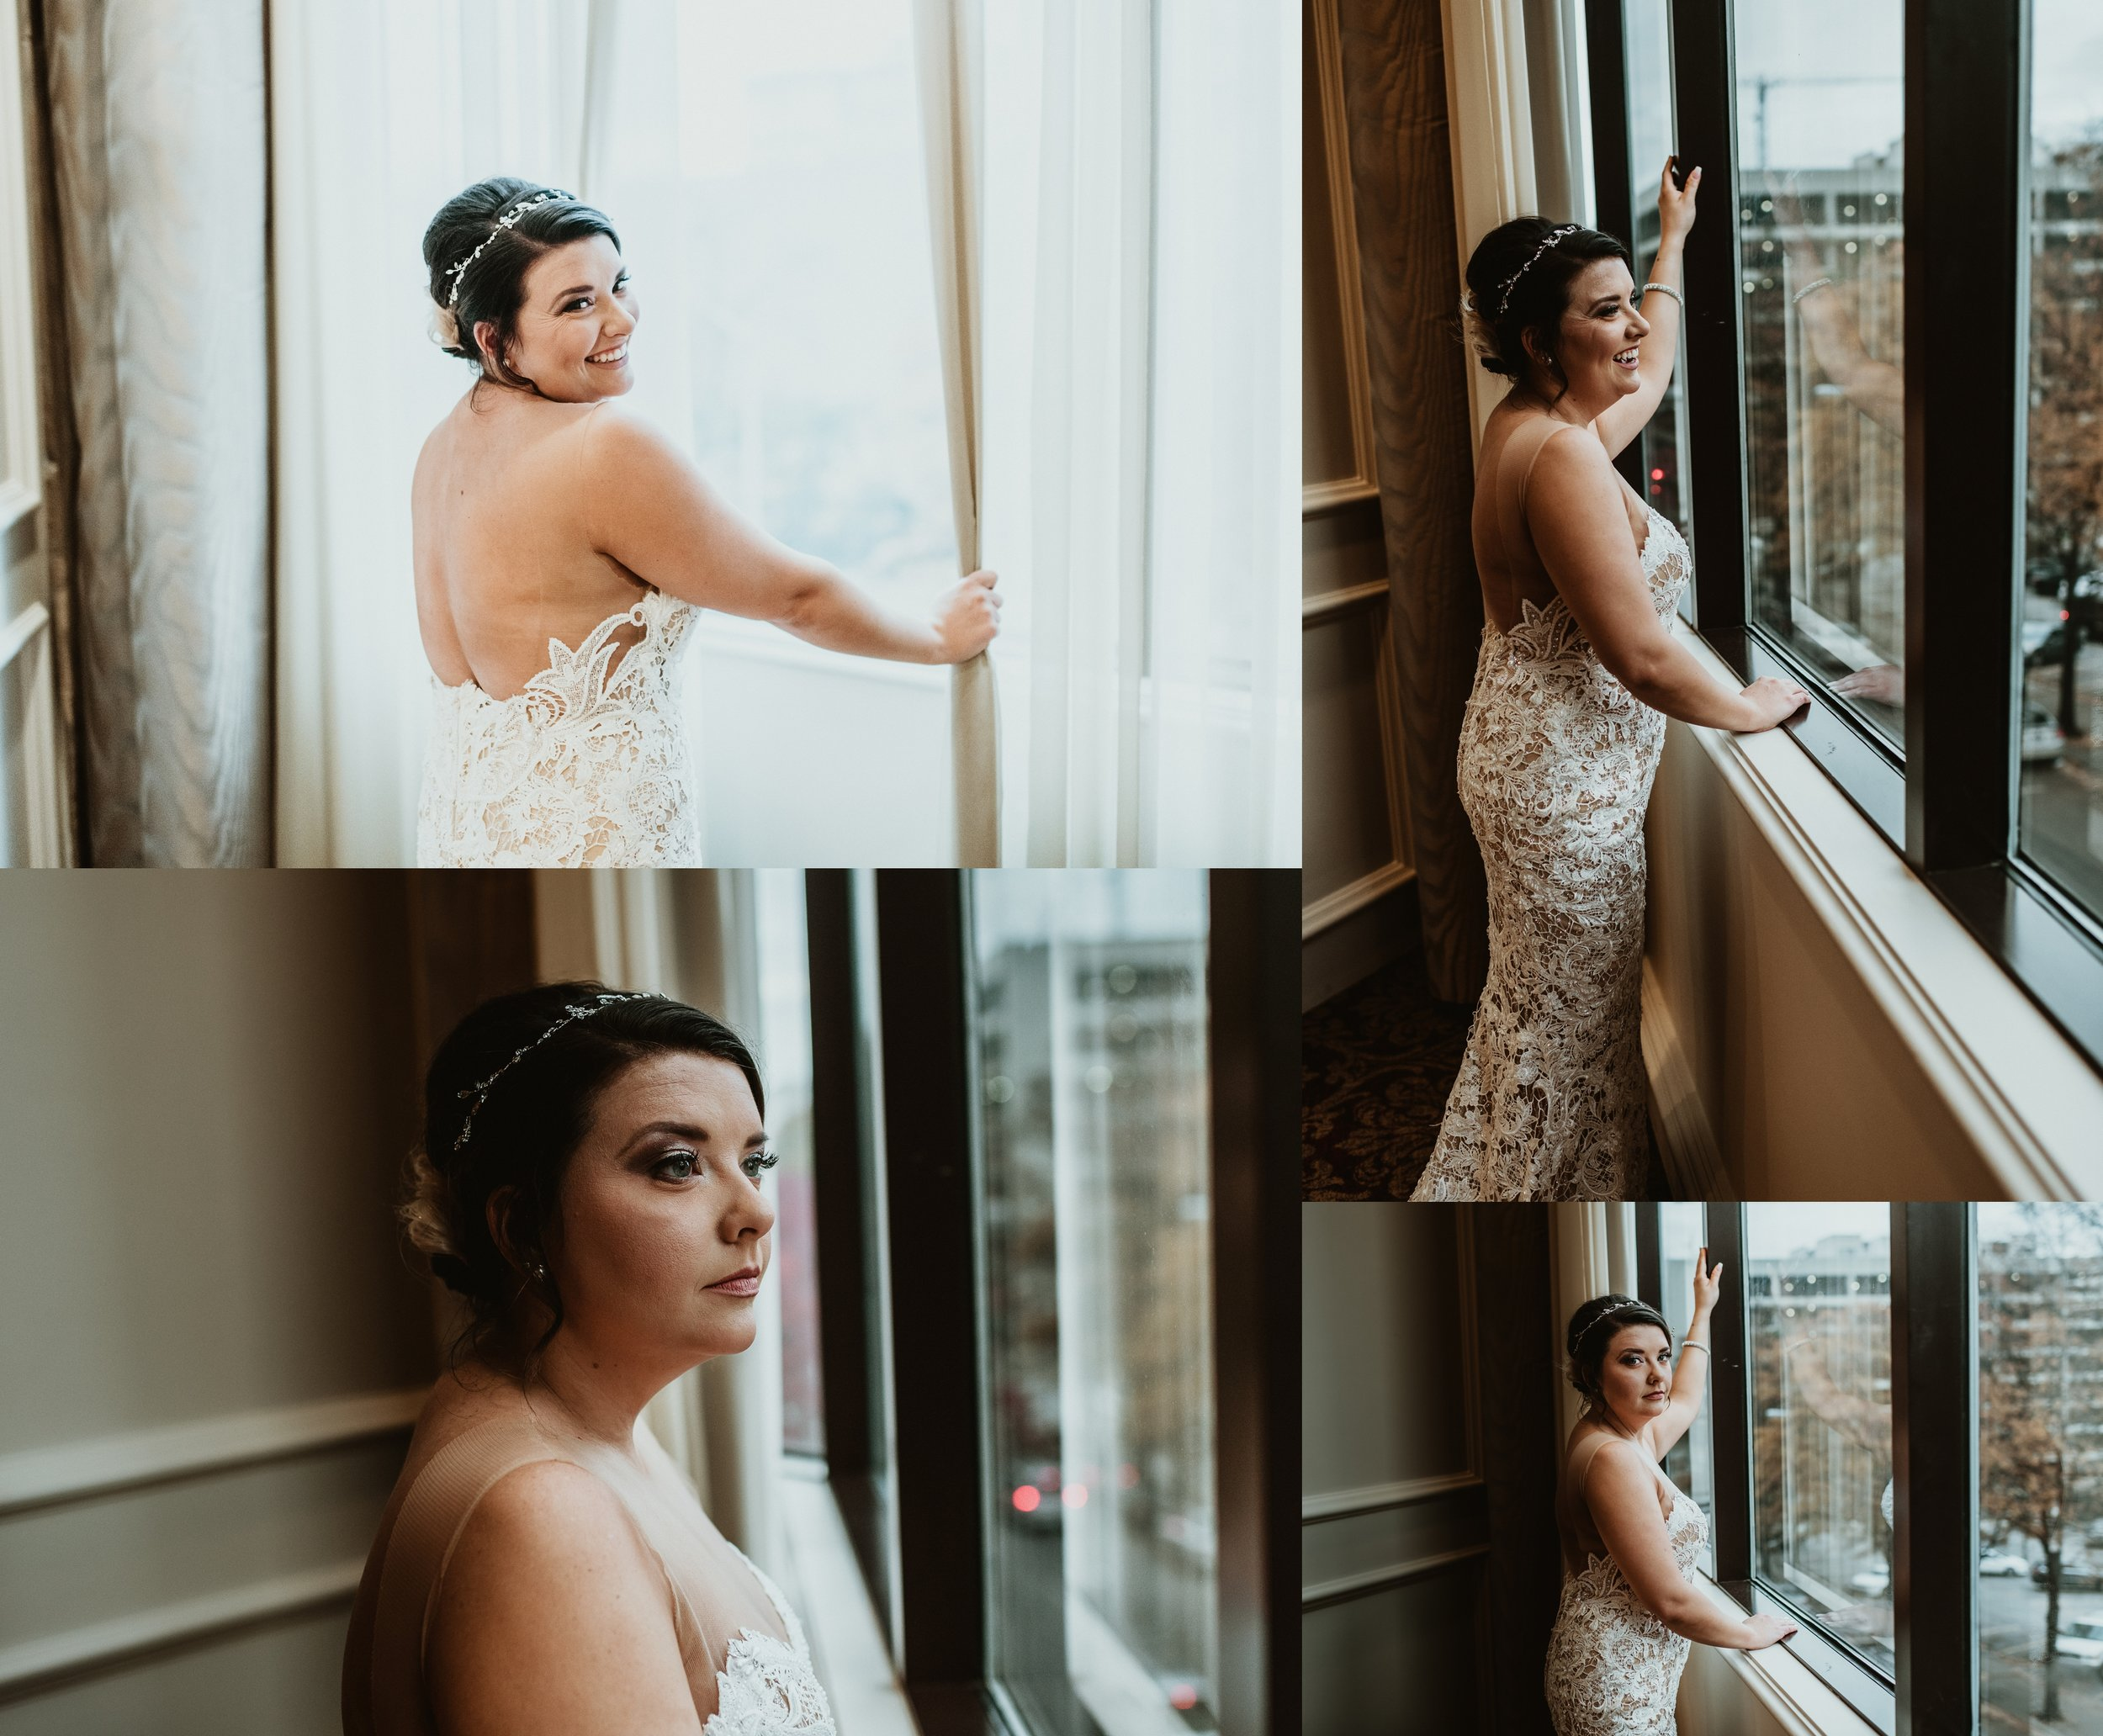 Classic Vintage Wedding | Ritz Carlton Atlanta, Georgia | Terry Farms Photography | Bridal Portraits